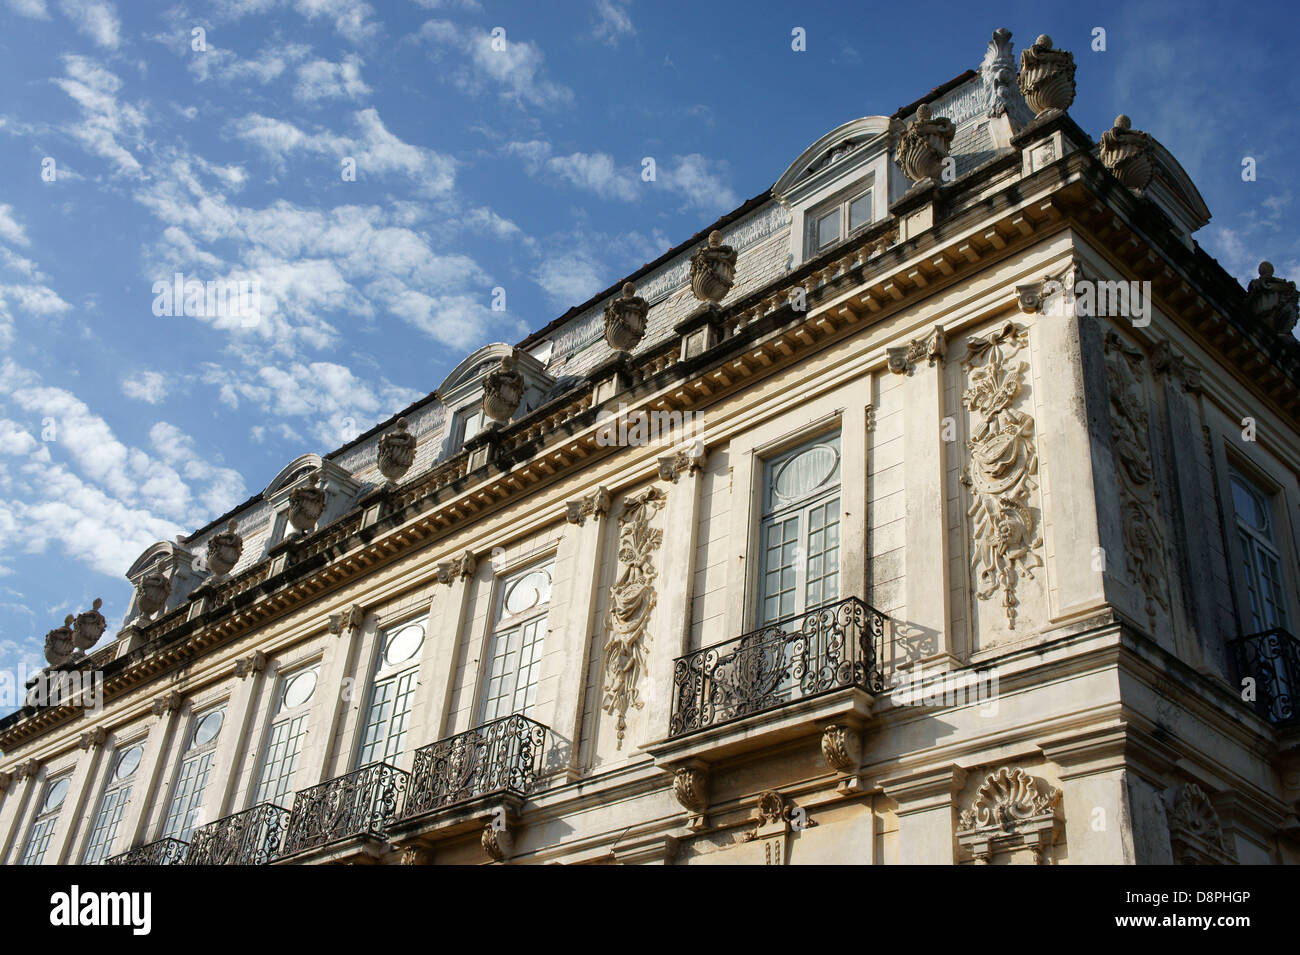 One of the Casa de Gemelas or Twins Houses, French Renaissance style mansions on Paseo de Montejo in Merida, Yucatan, - Stock Image